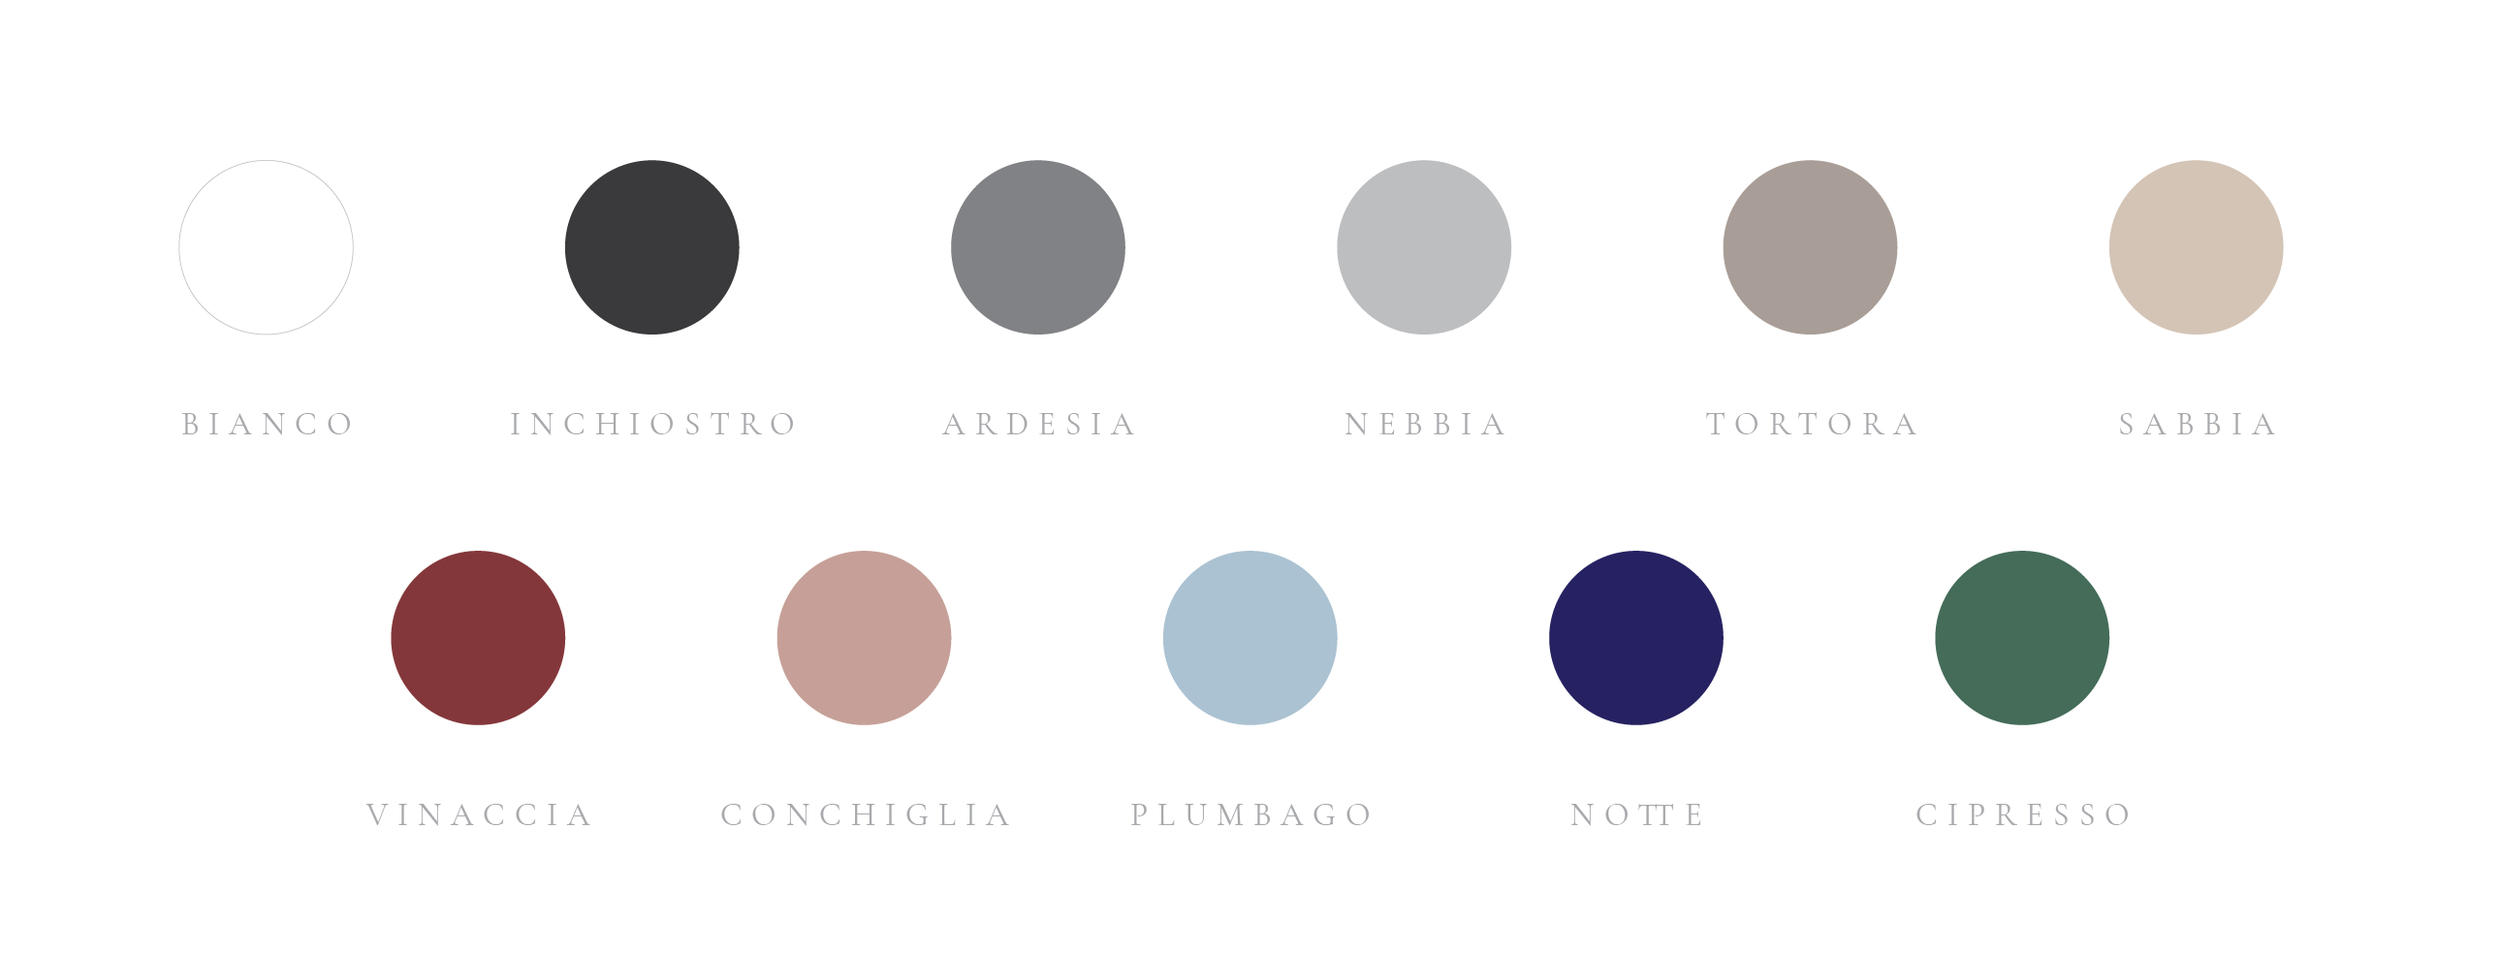 color options-12.png